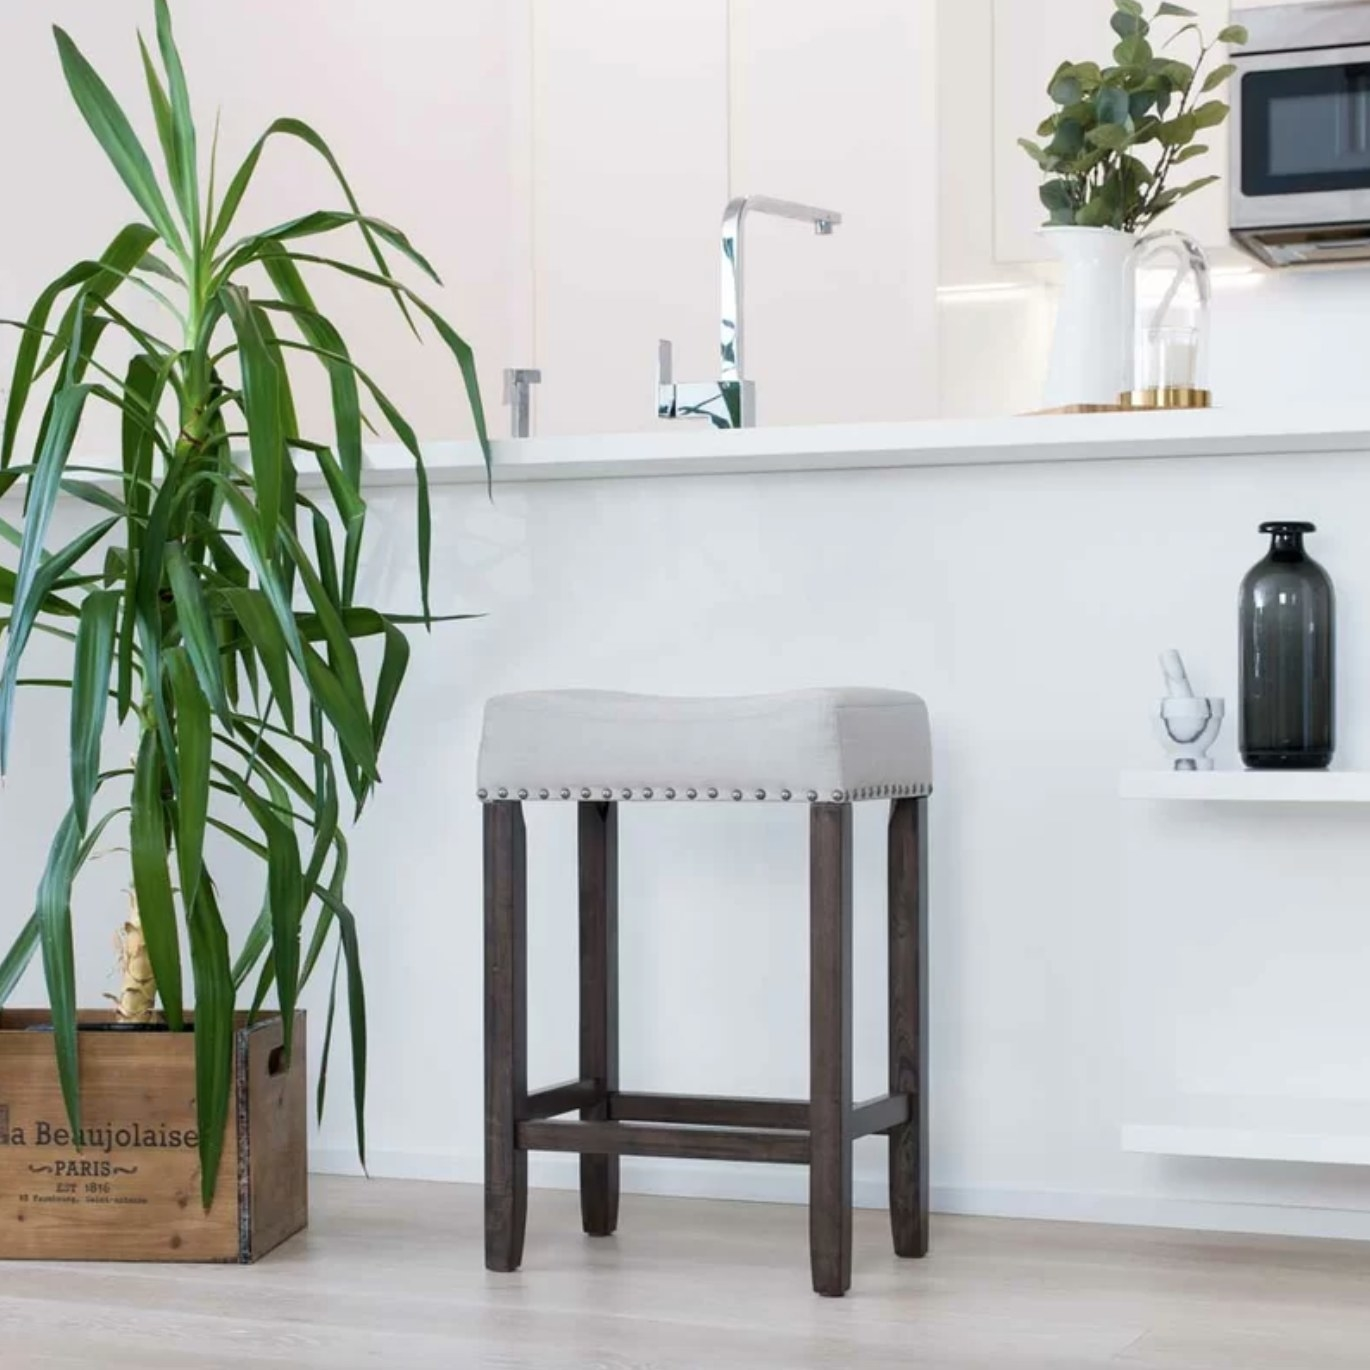 The bar and counter stool in gray with dark brown legs pulled up to a kitchen island